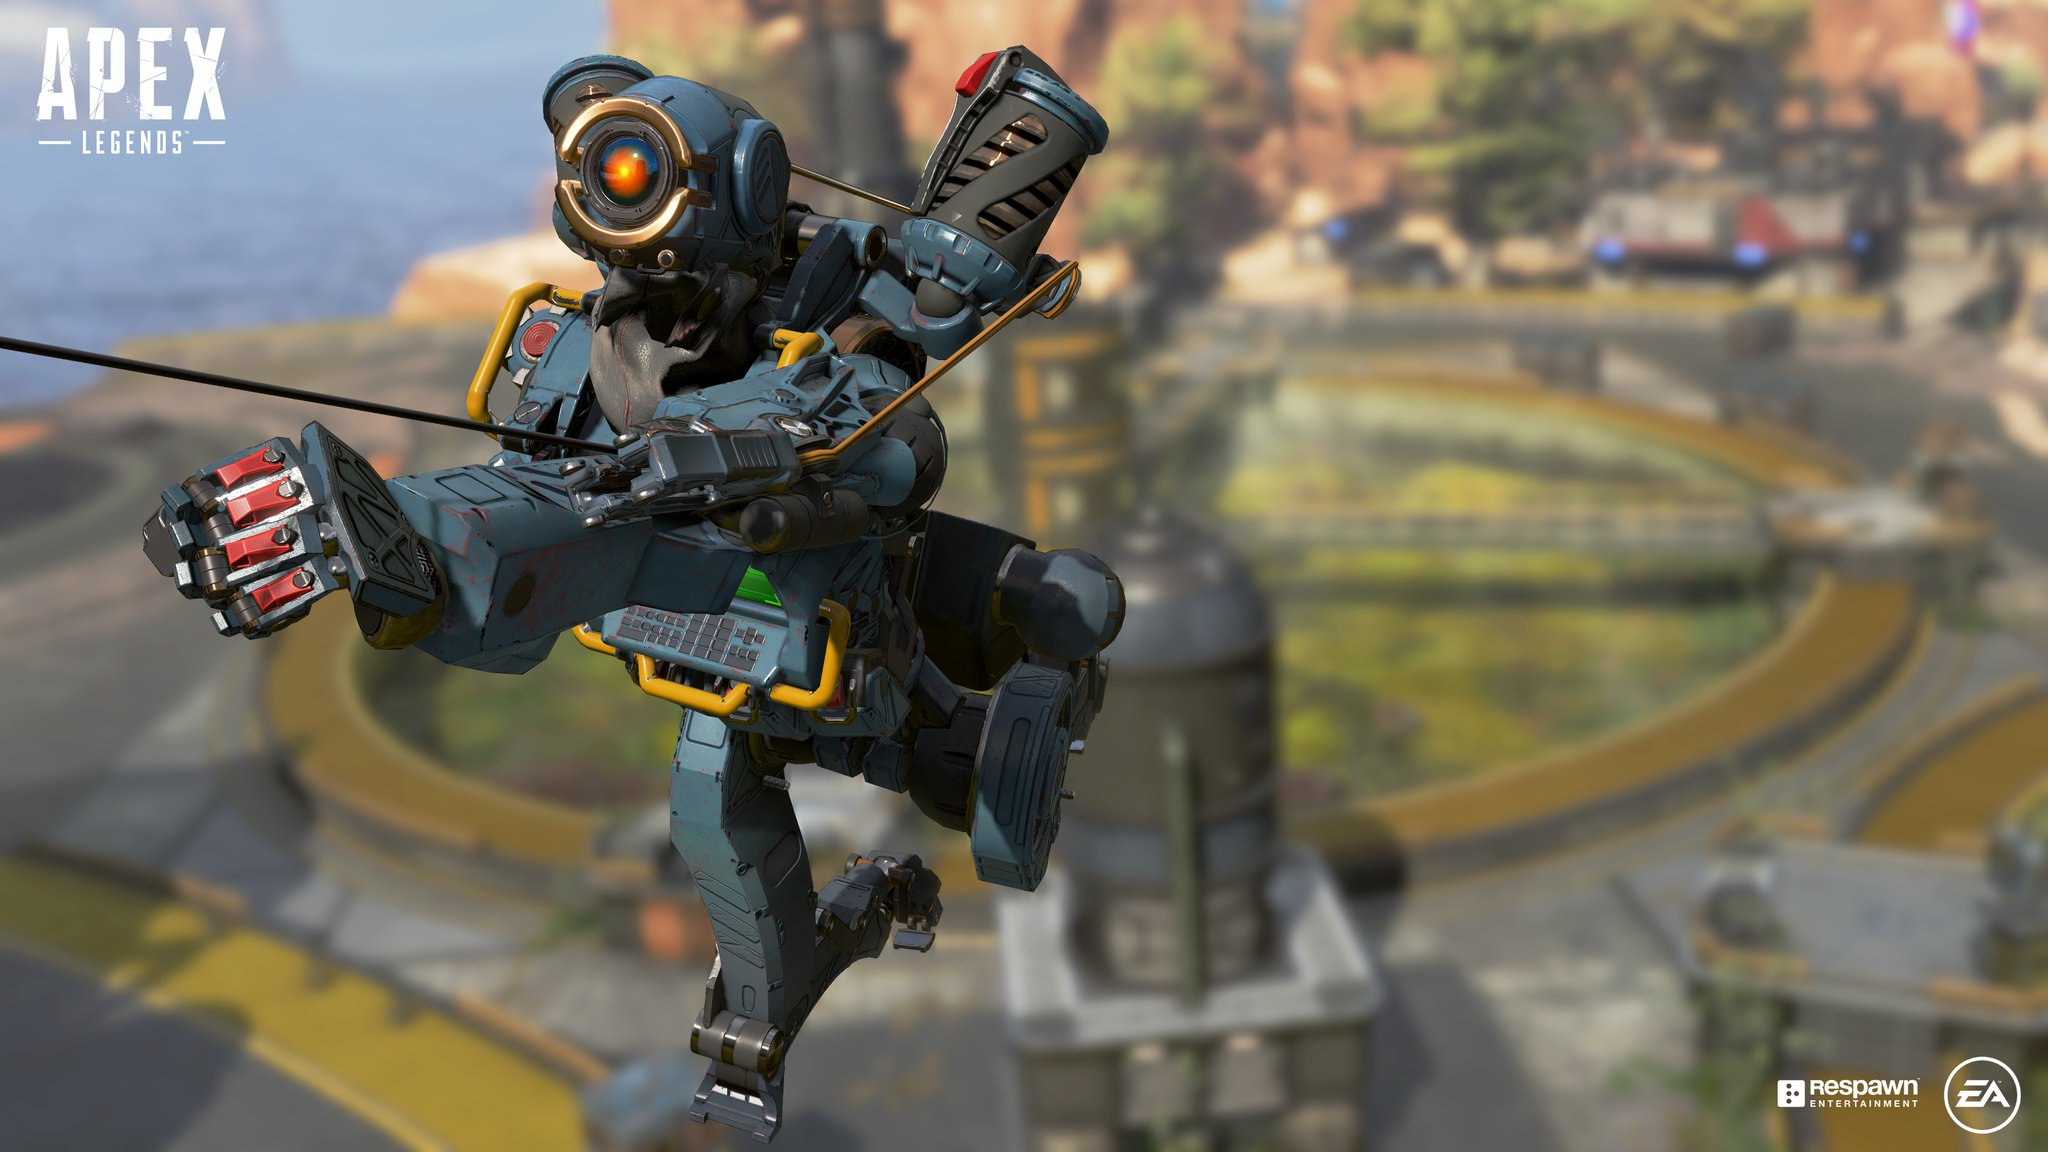 Apex Legends Download Size: What Is the Install Size on Each